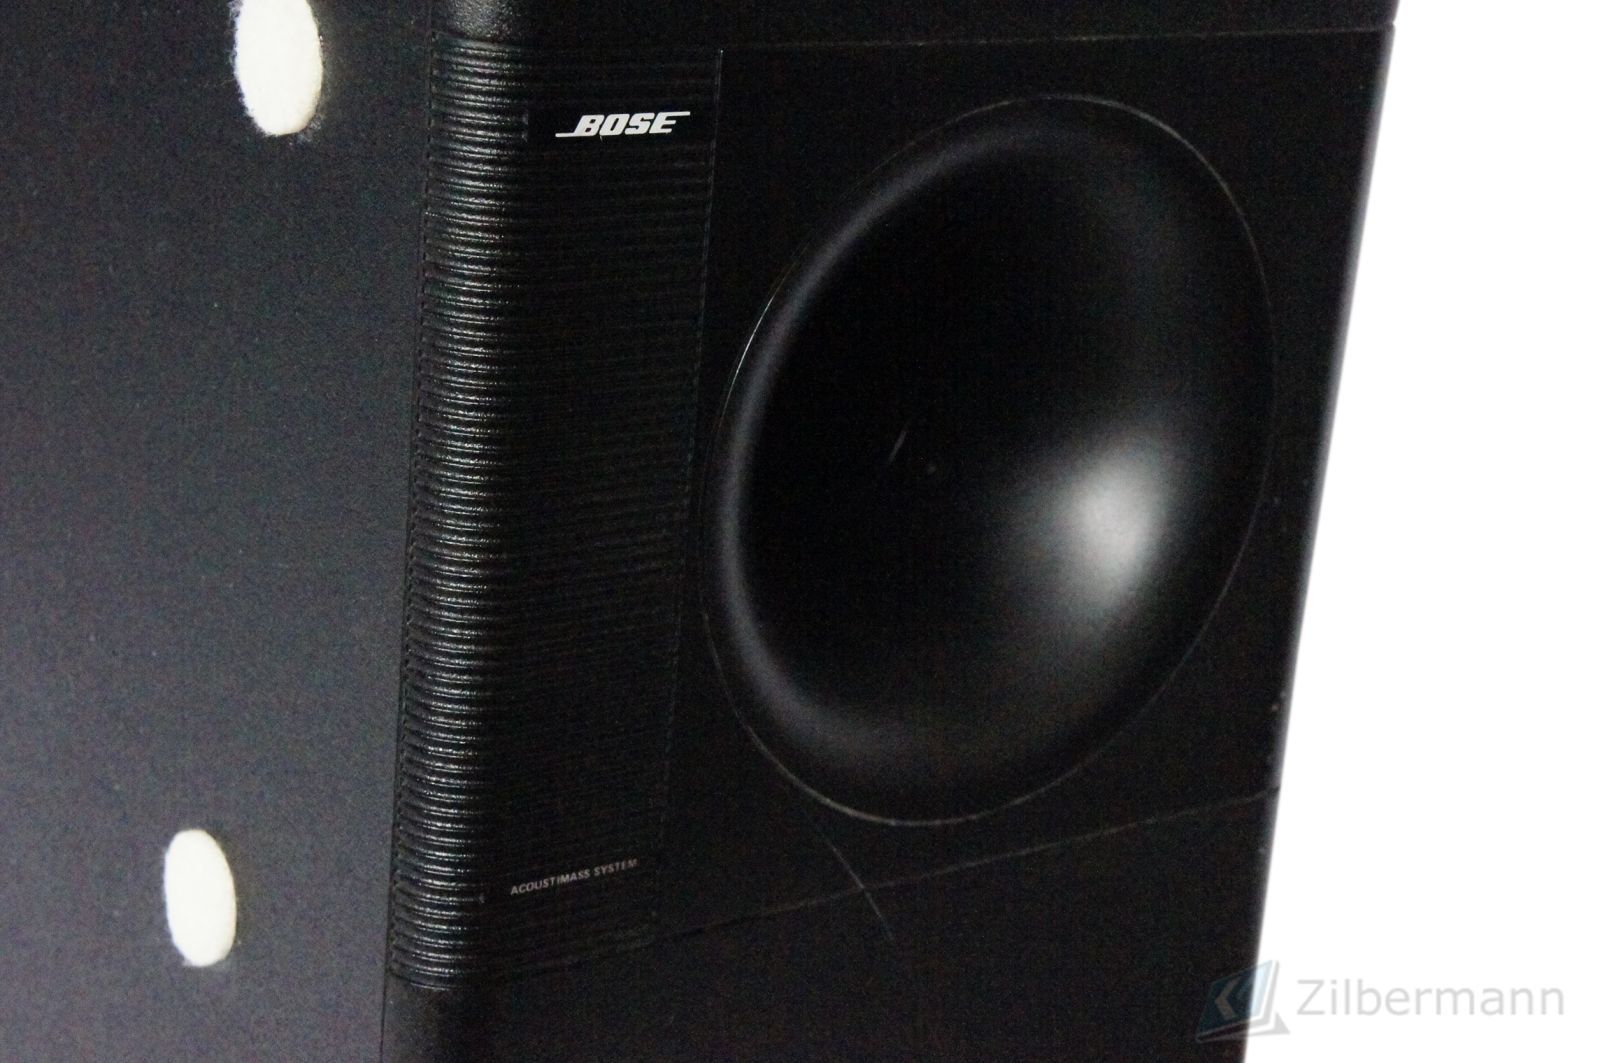 Bose_Acoustimass_30_Series_II_Powered_Subwoofer_02